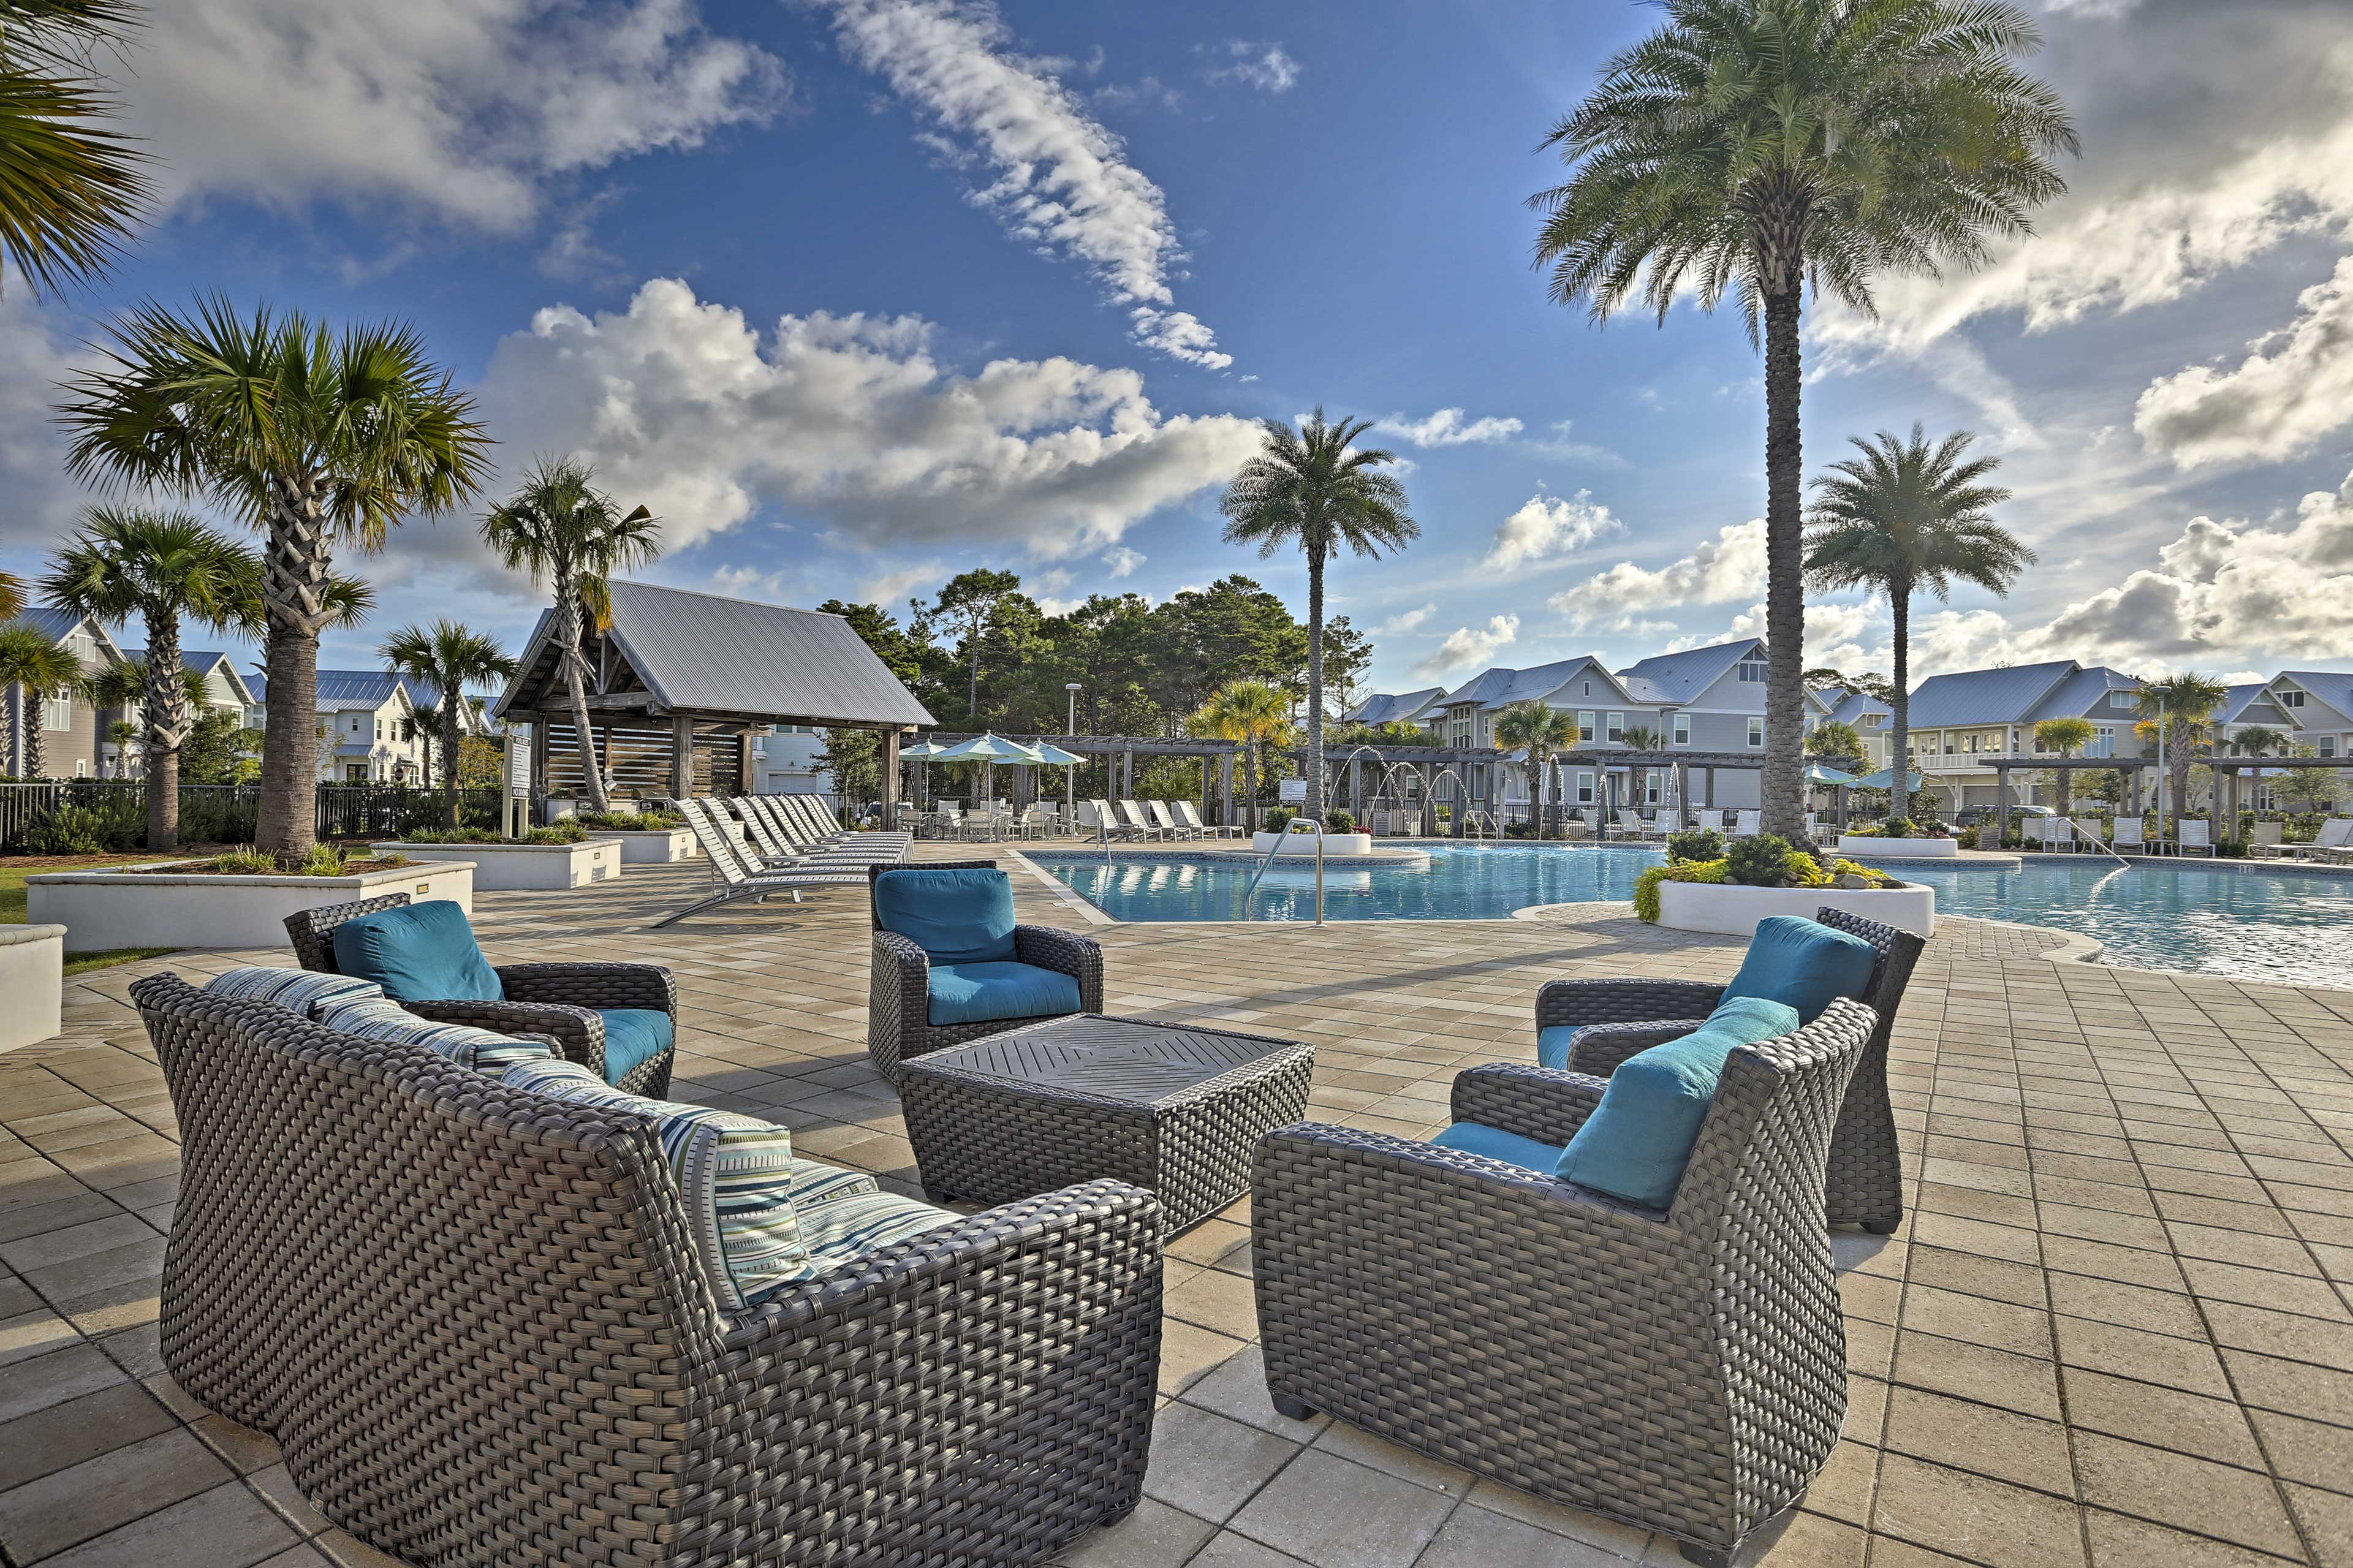 Take a seat in the patio furniture or lounge chairs around the community pool.